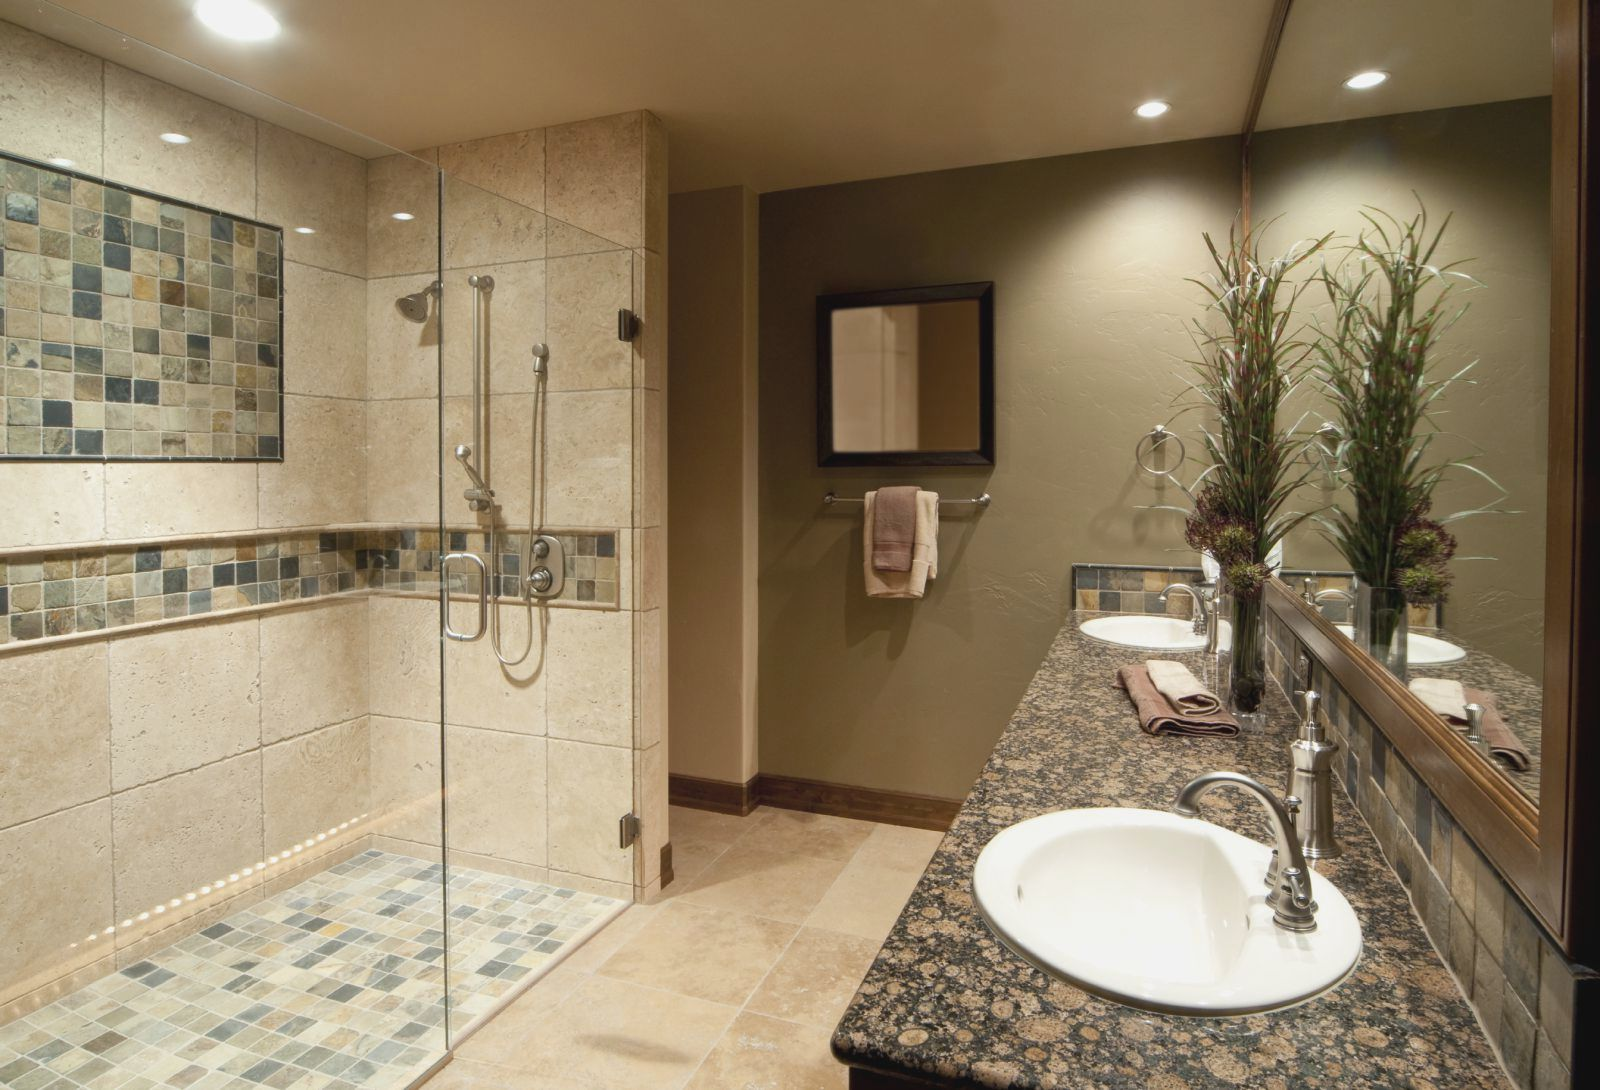 bathroom-remodel-ideas-before-and-after-remodel-bathroom-pictures-before-after-aislv-interiors-Picture-HD-Wallpapers-new-modern-design